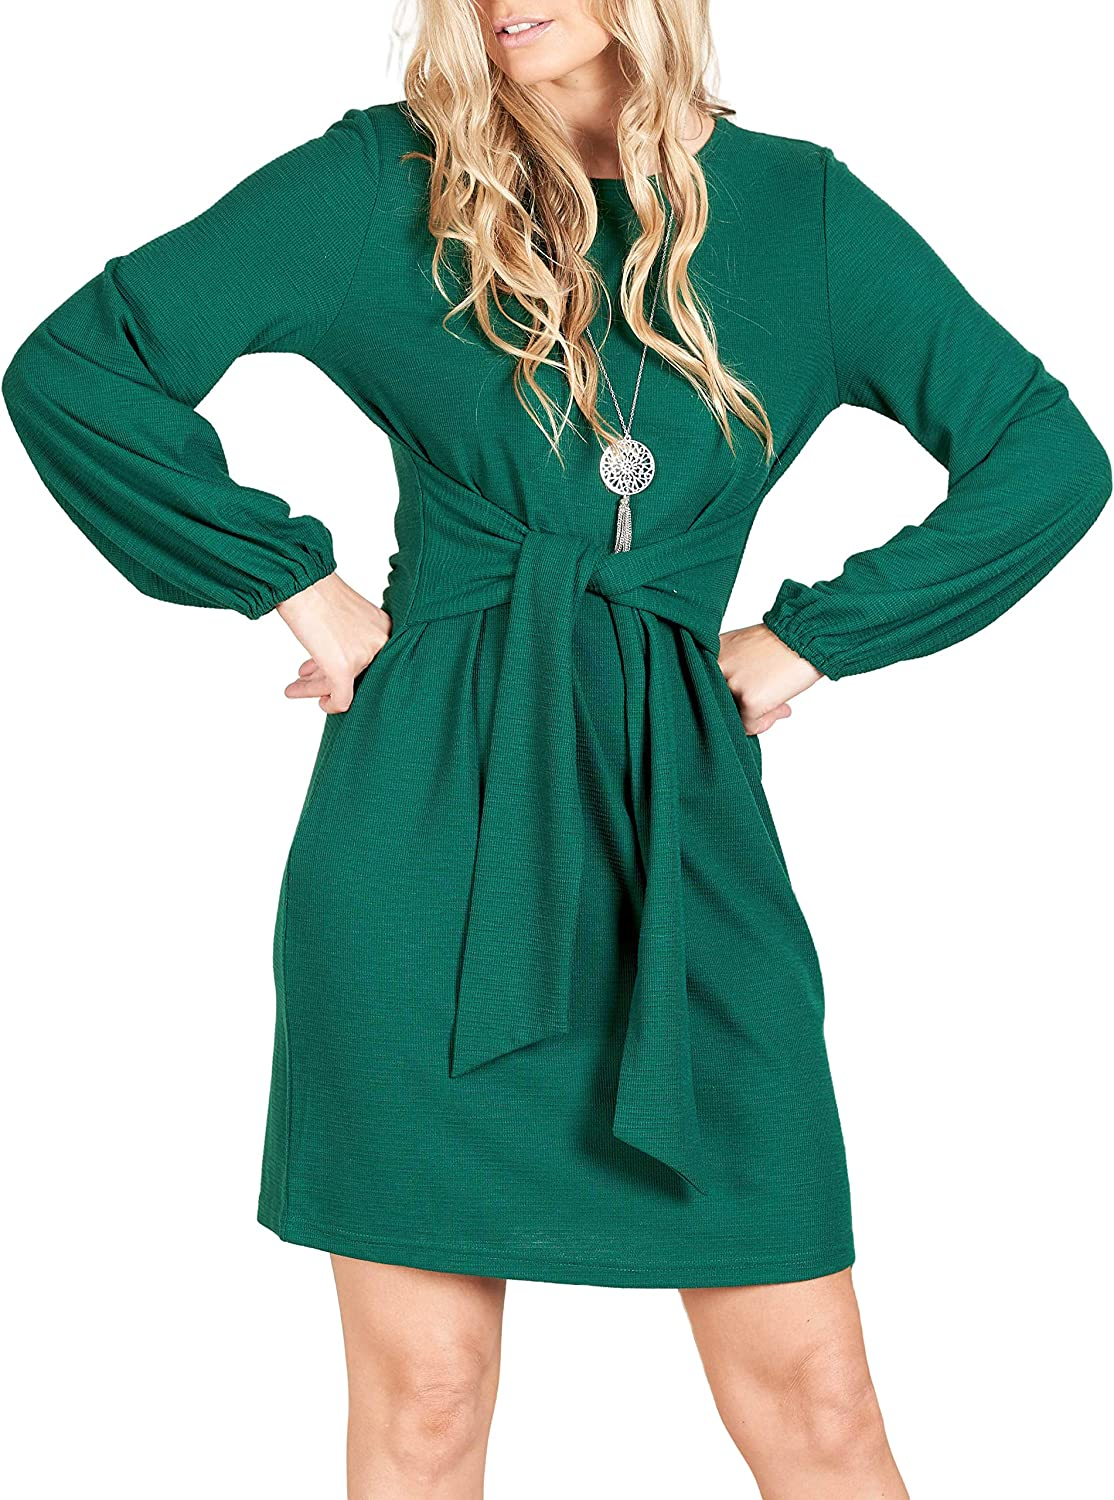 lionstill Women's Elegant Long Sleeve Swe Tie Max 43% OFF Casual Dress Waist We OFFer at cheap prices